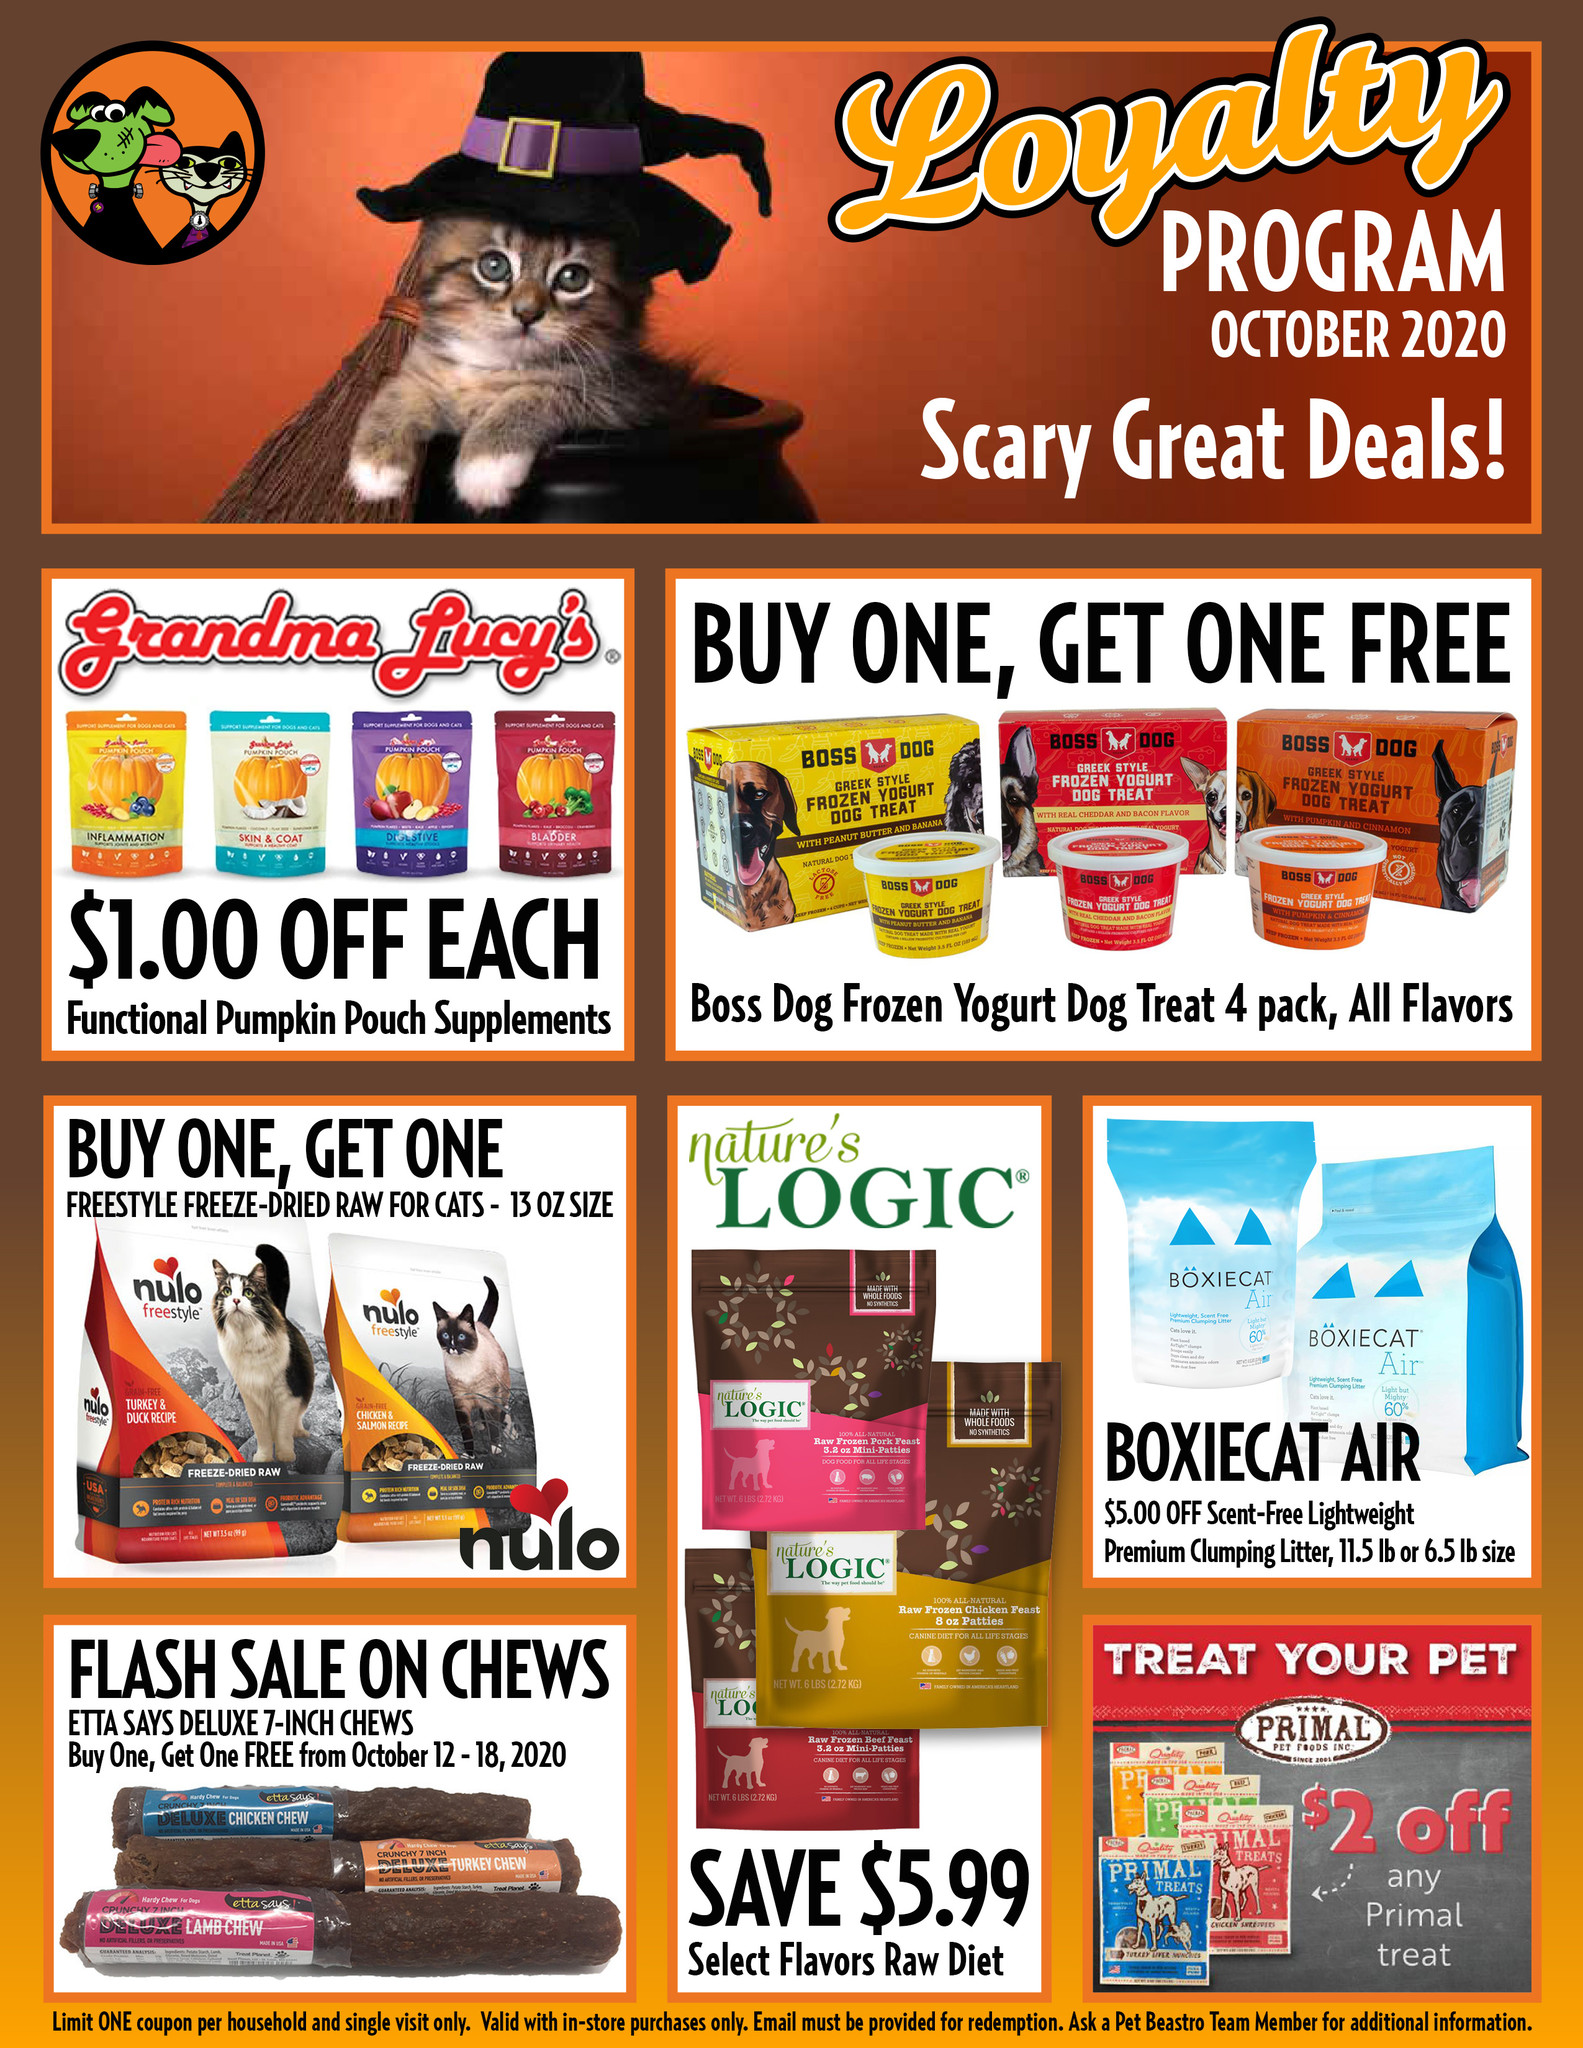 Spooktacular October Specials For Your Cat & Dog!